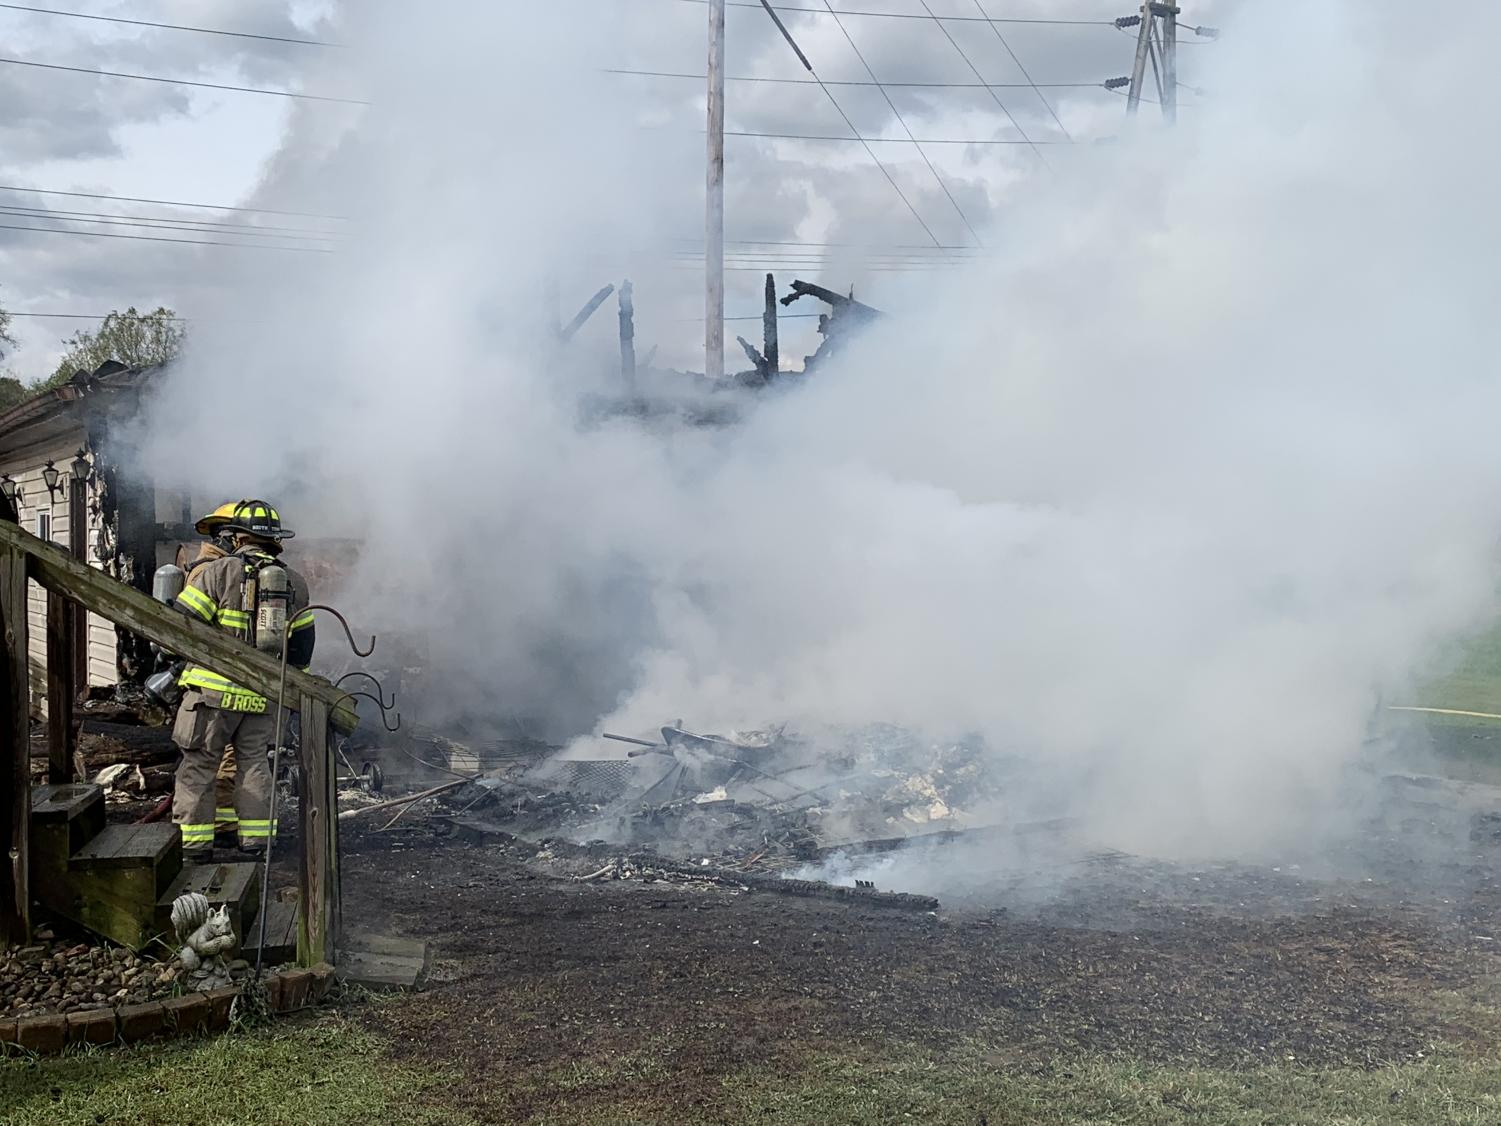 Firefighters work to extinguish the flames from a detached garage fire at the intersection of Elm Street and 3rd Street.